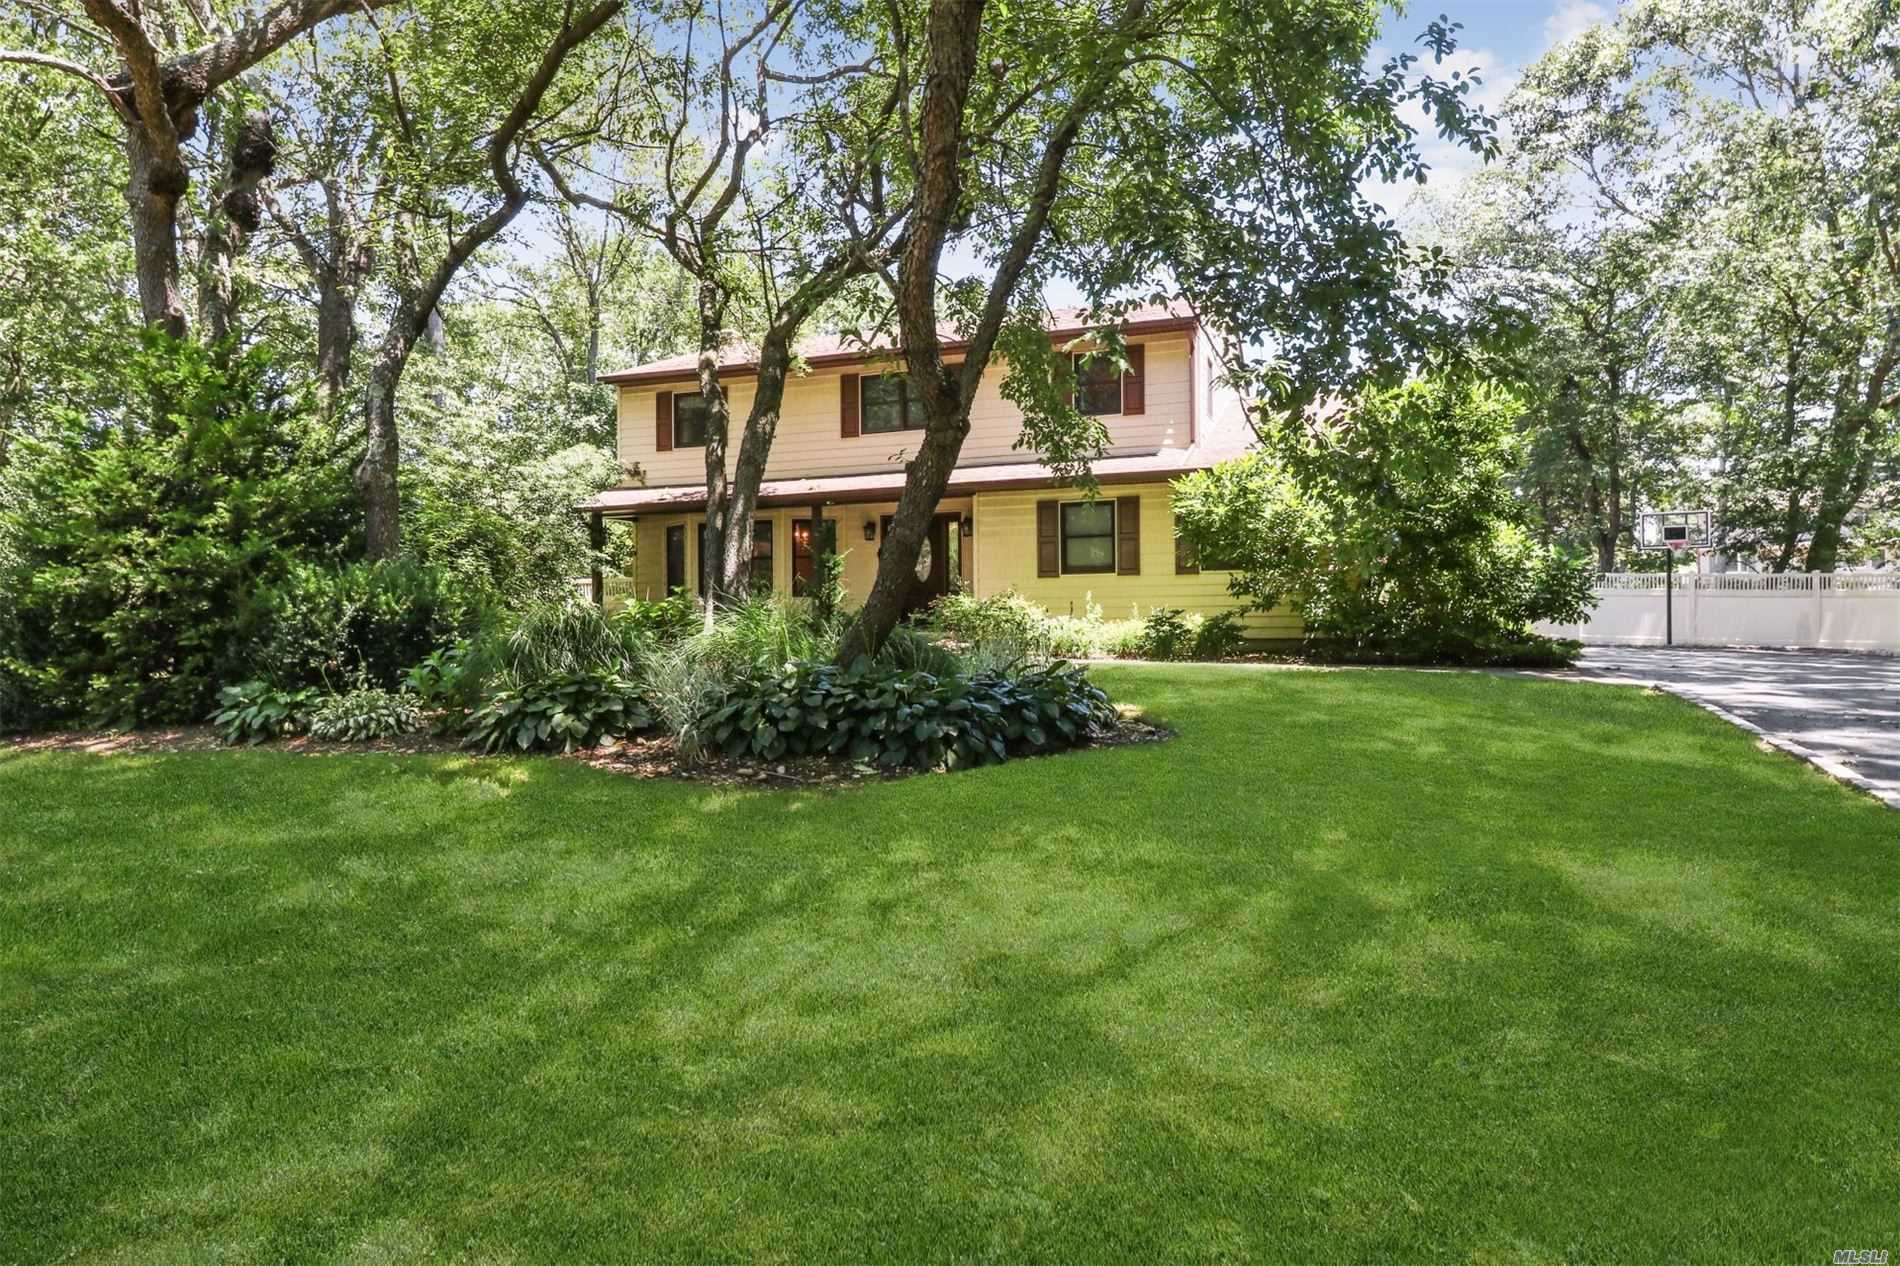 11 Patrician Dr - E. Northport, New York